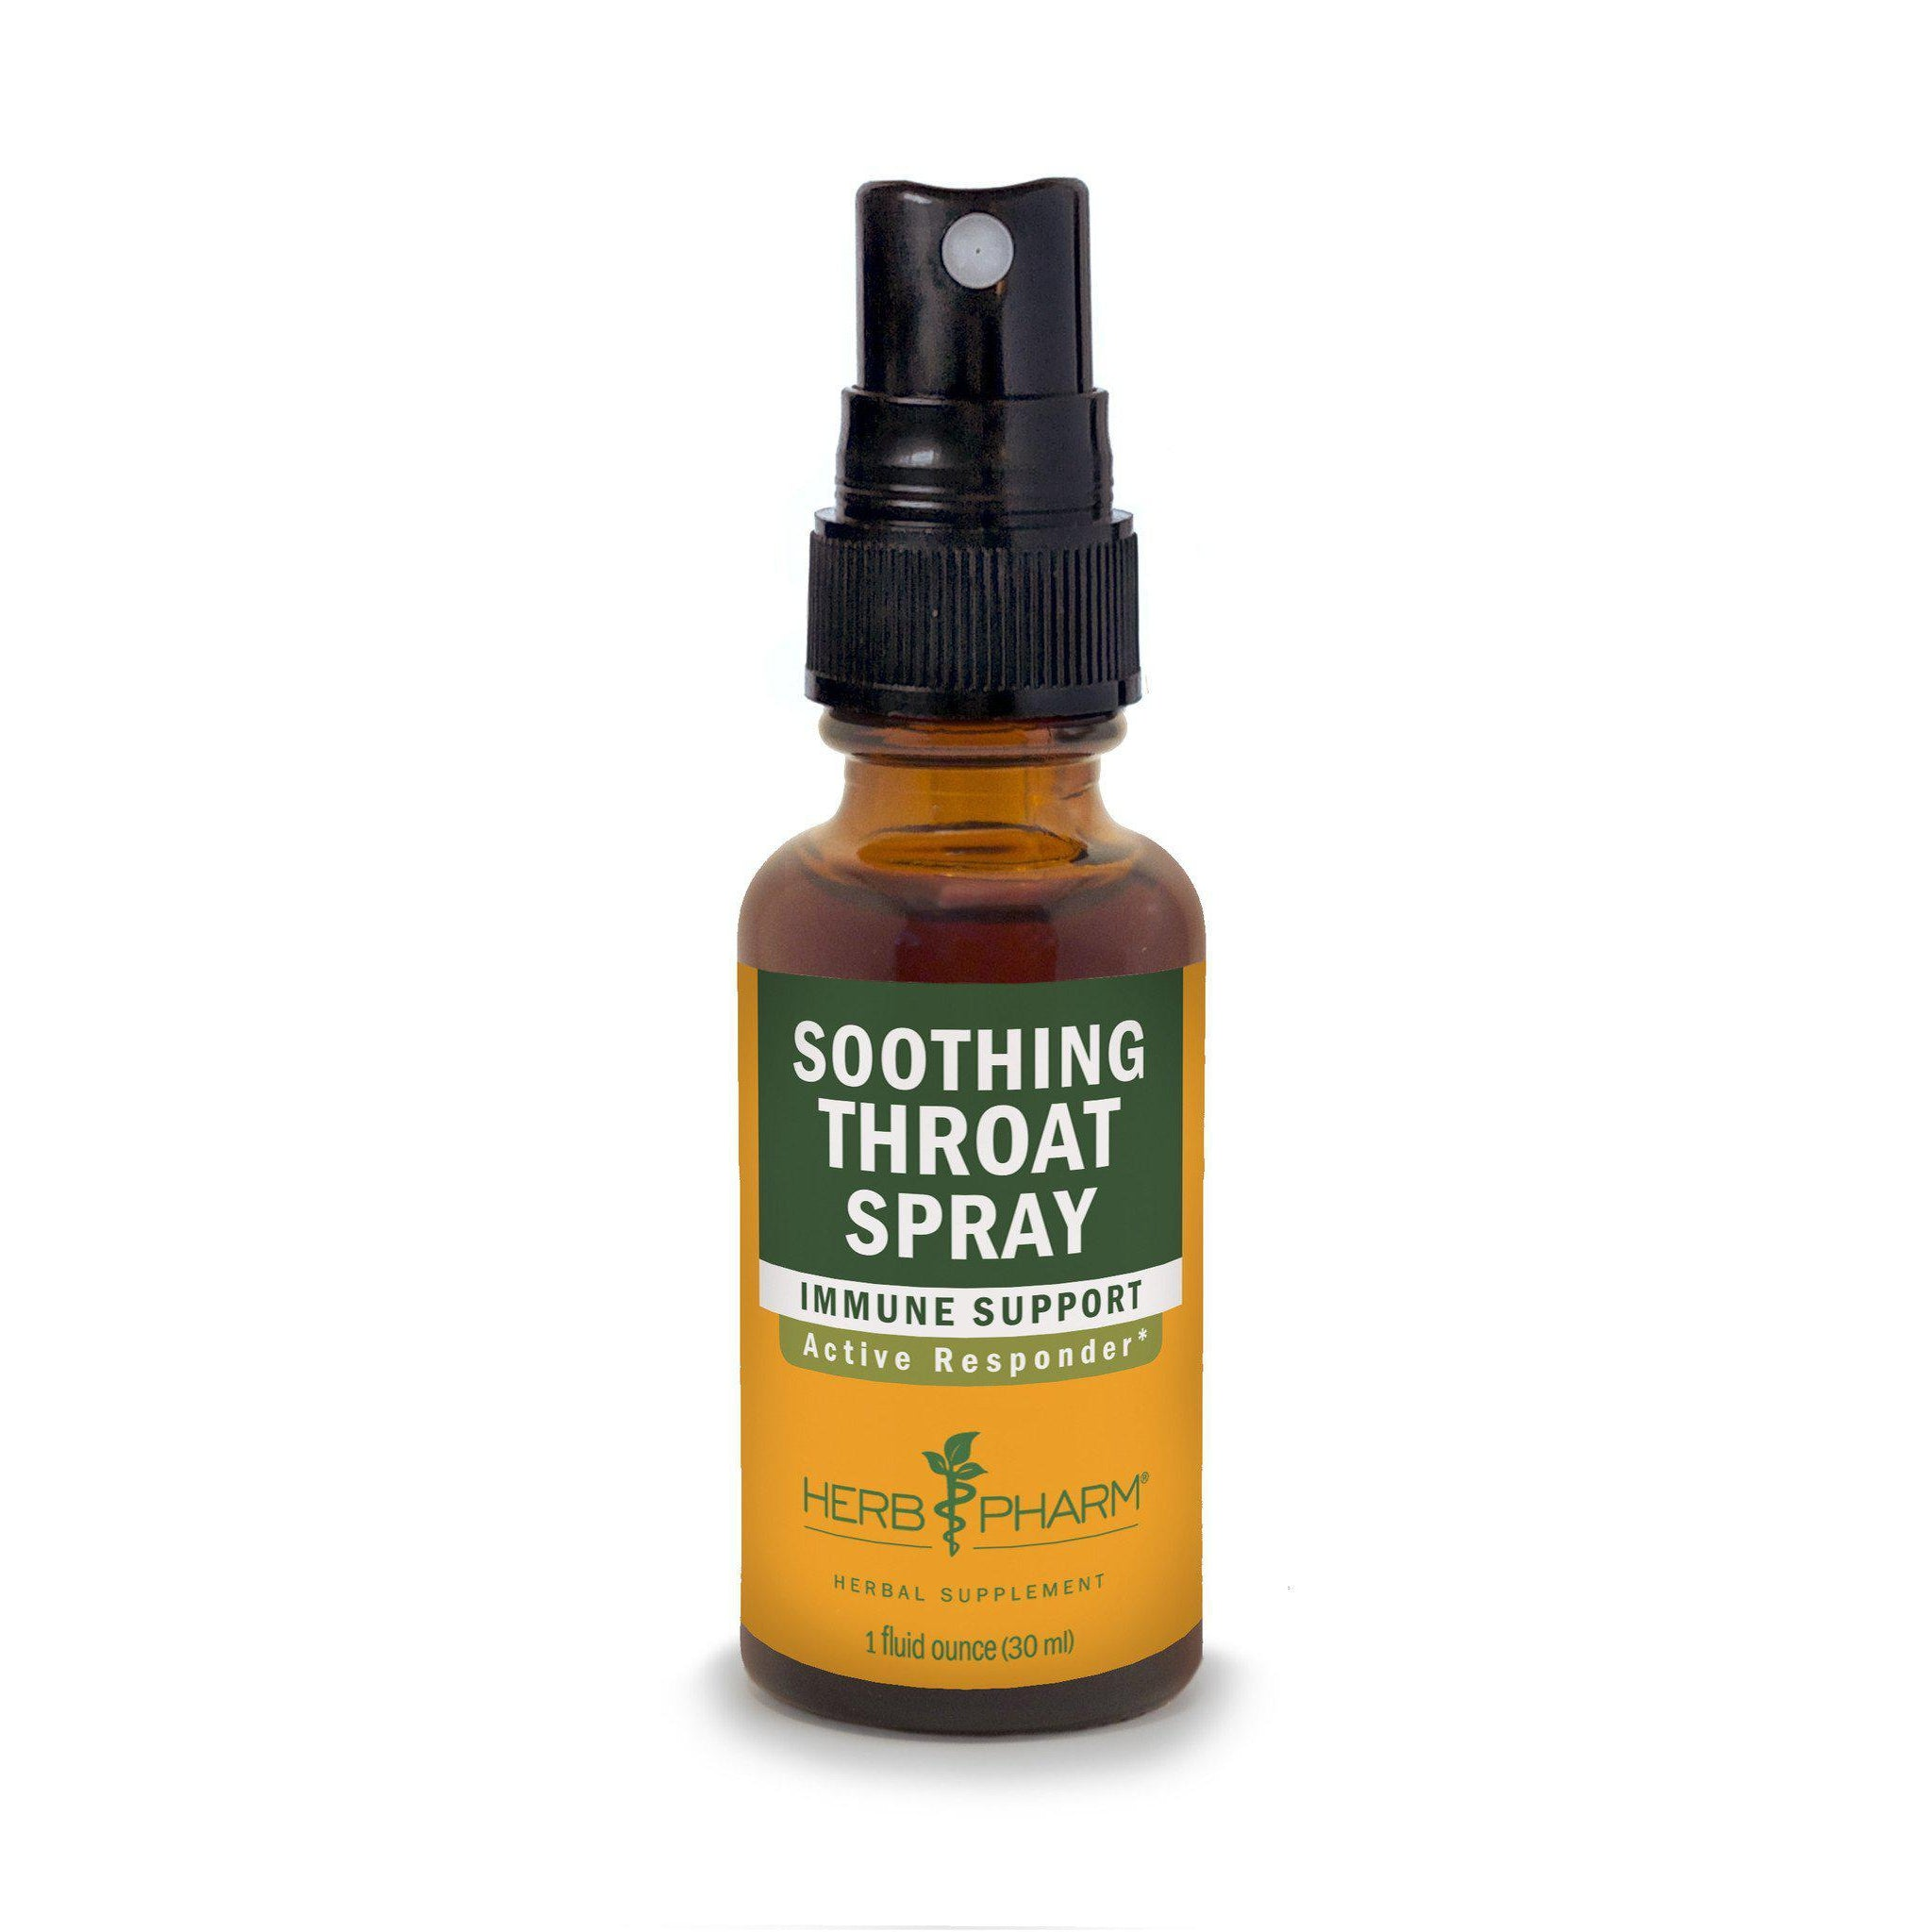 Soothing Throat Spray 1 fl.oz.